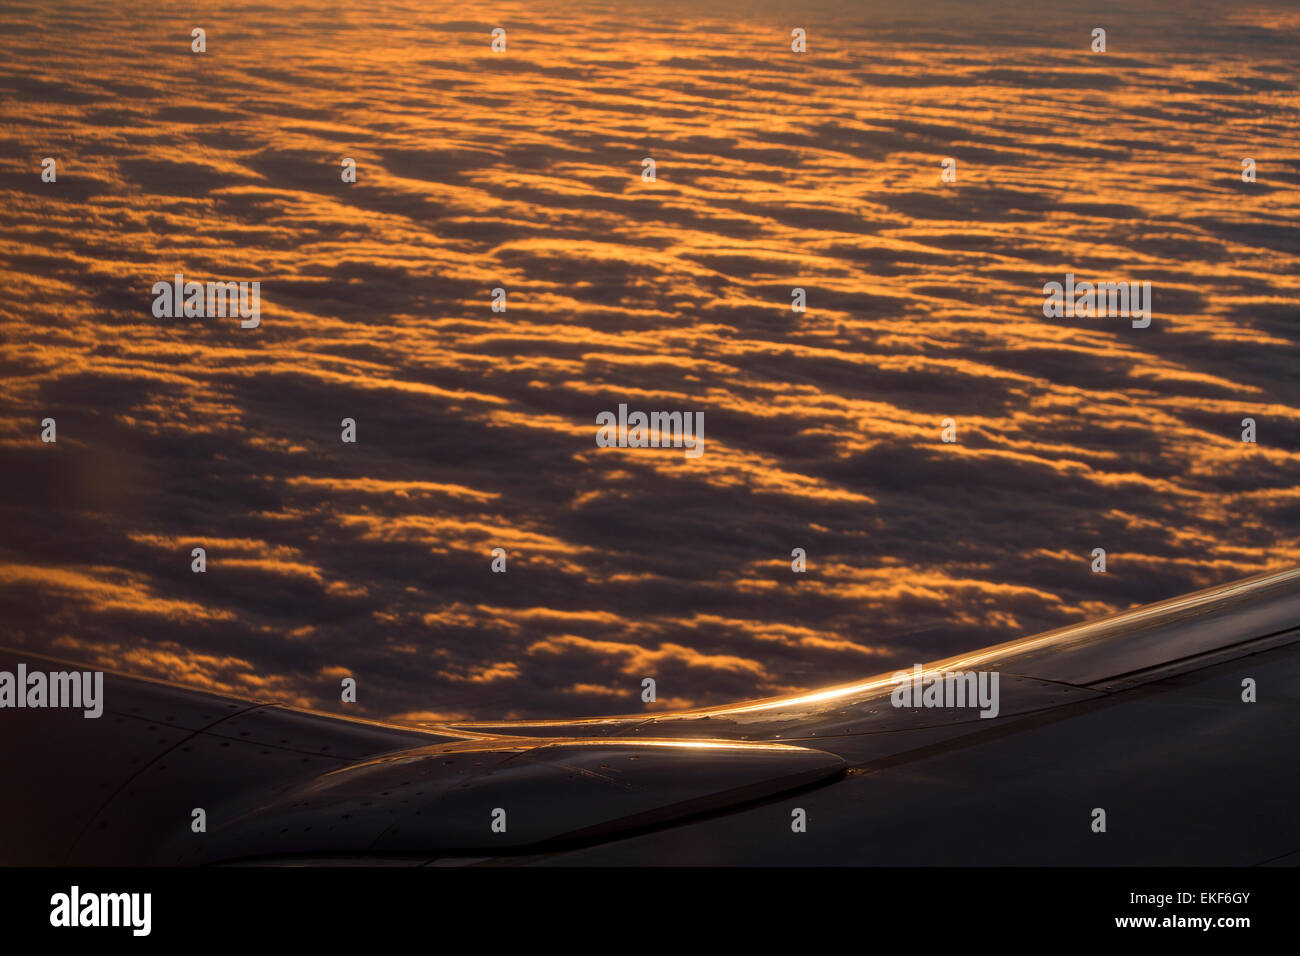 Airplane over the clouds - Stock Image